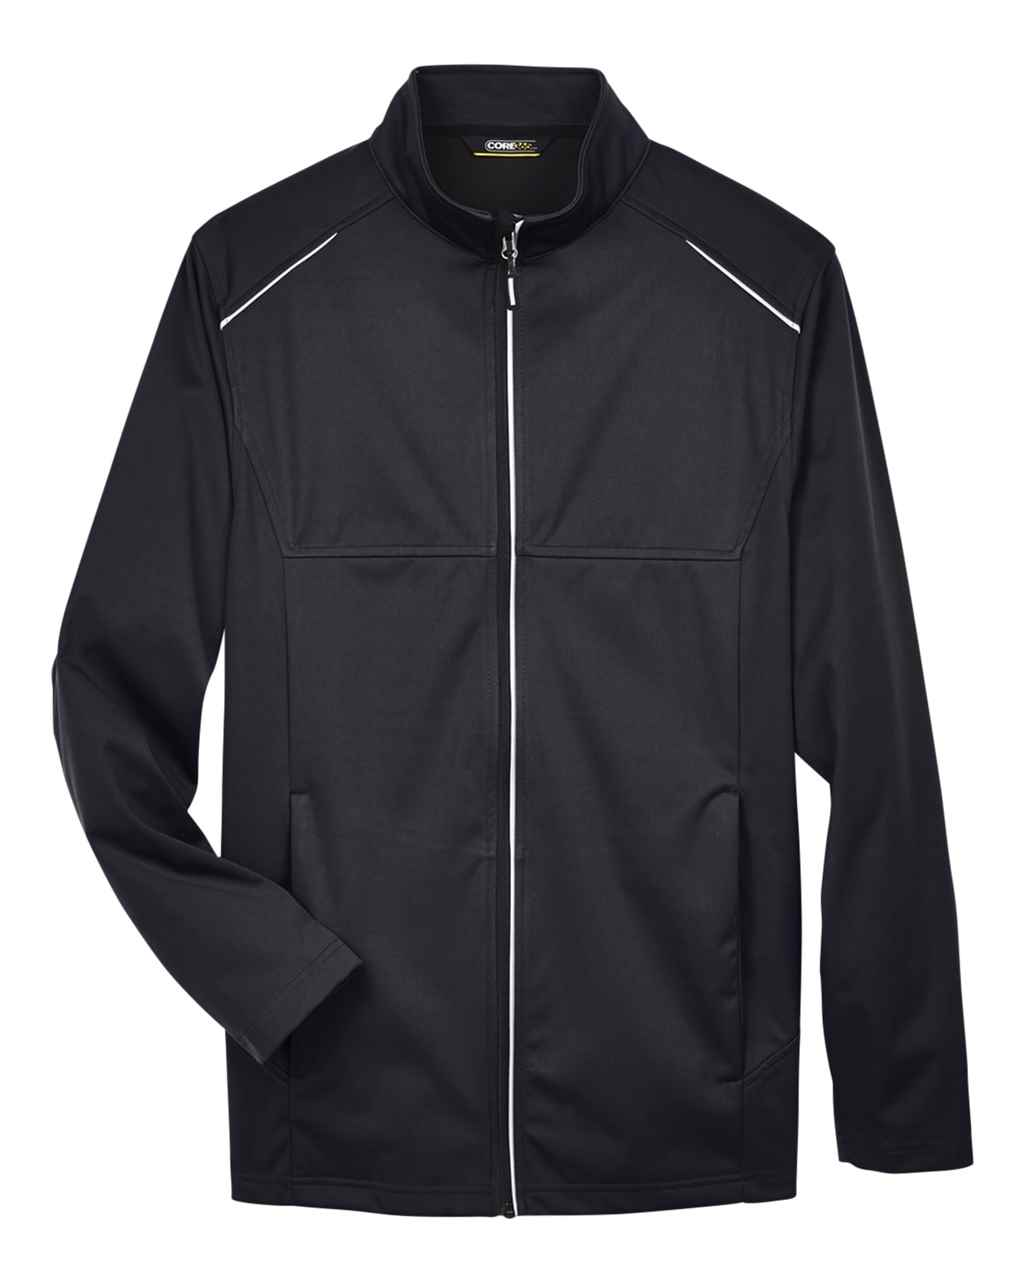 Picture of CORE365 Men's Techno Lite Three-Layer Knit Tech-Shell